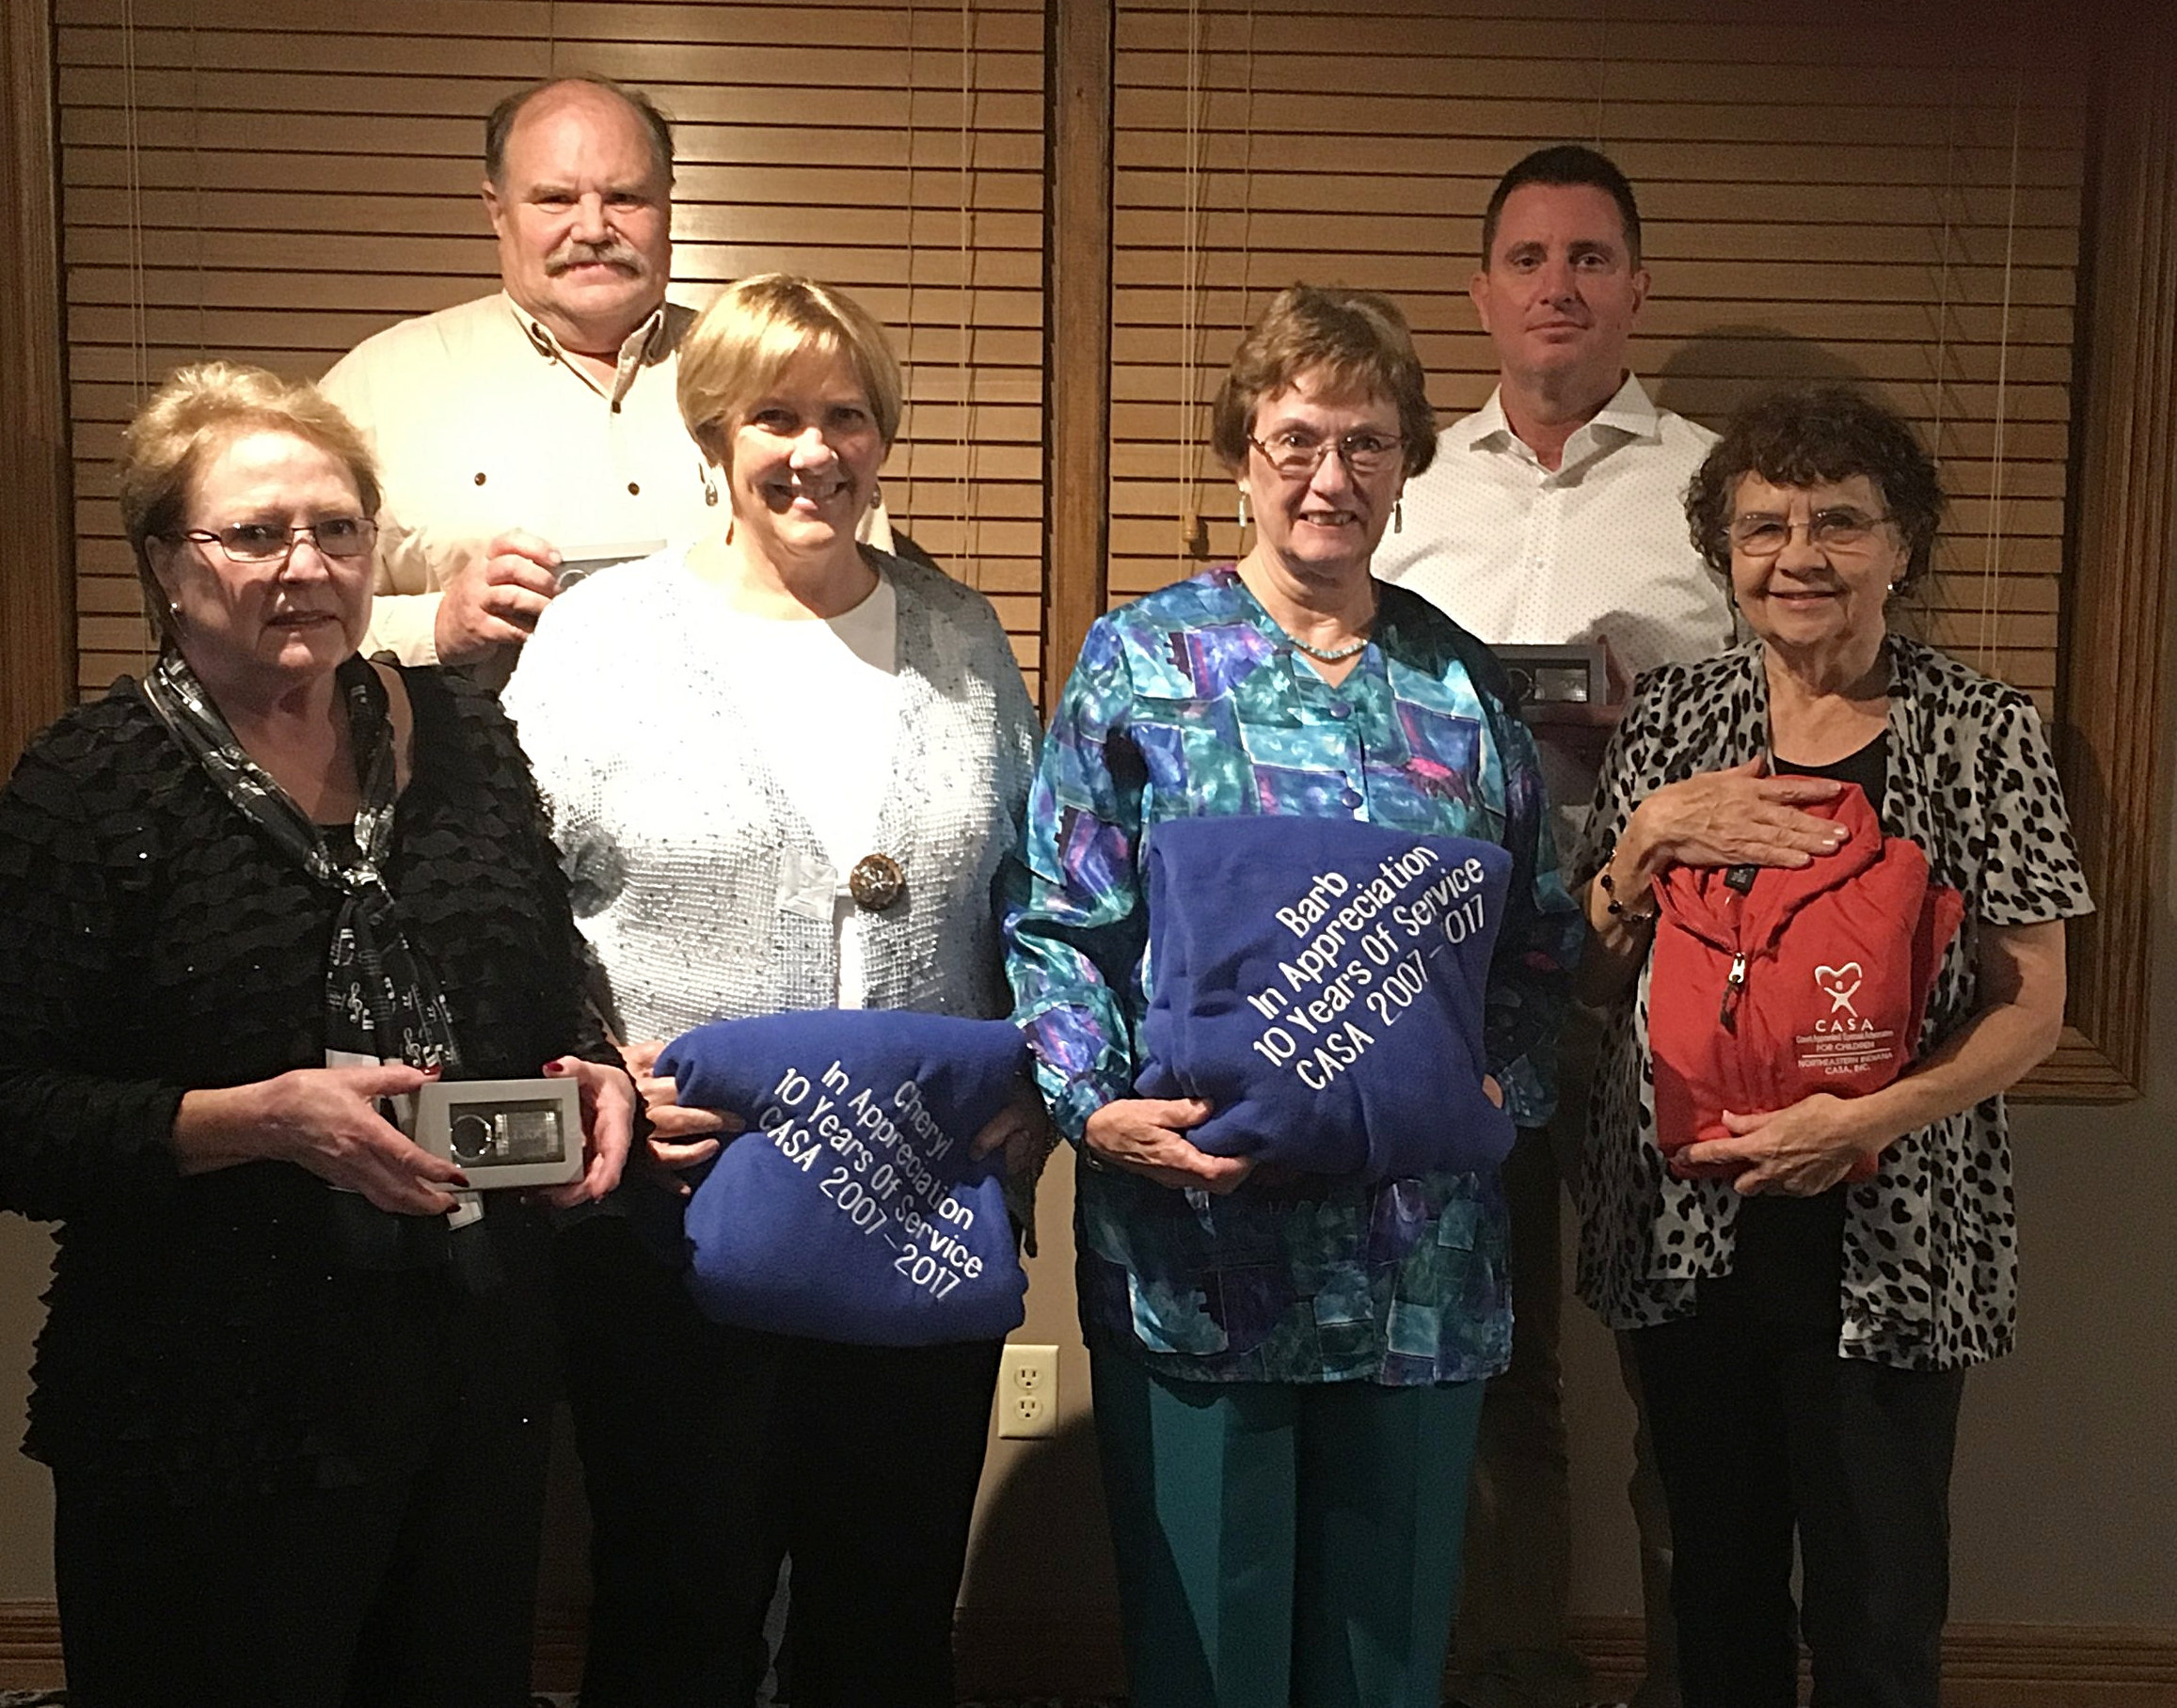 Awards were given to (from left to right) Lee Marki and Rick Owens for five years of service, Cheryl Weaver and Barb Bauer for 10 years of service, and Elizabeth Gilbert for 15 years of service. In addition, board members Troy Weimer and Scott Newman (not pictured) were recognized for five years of service.